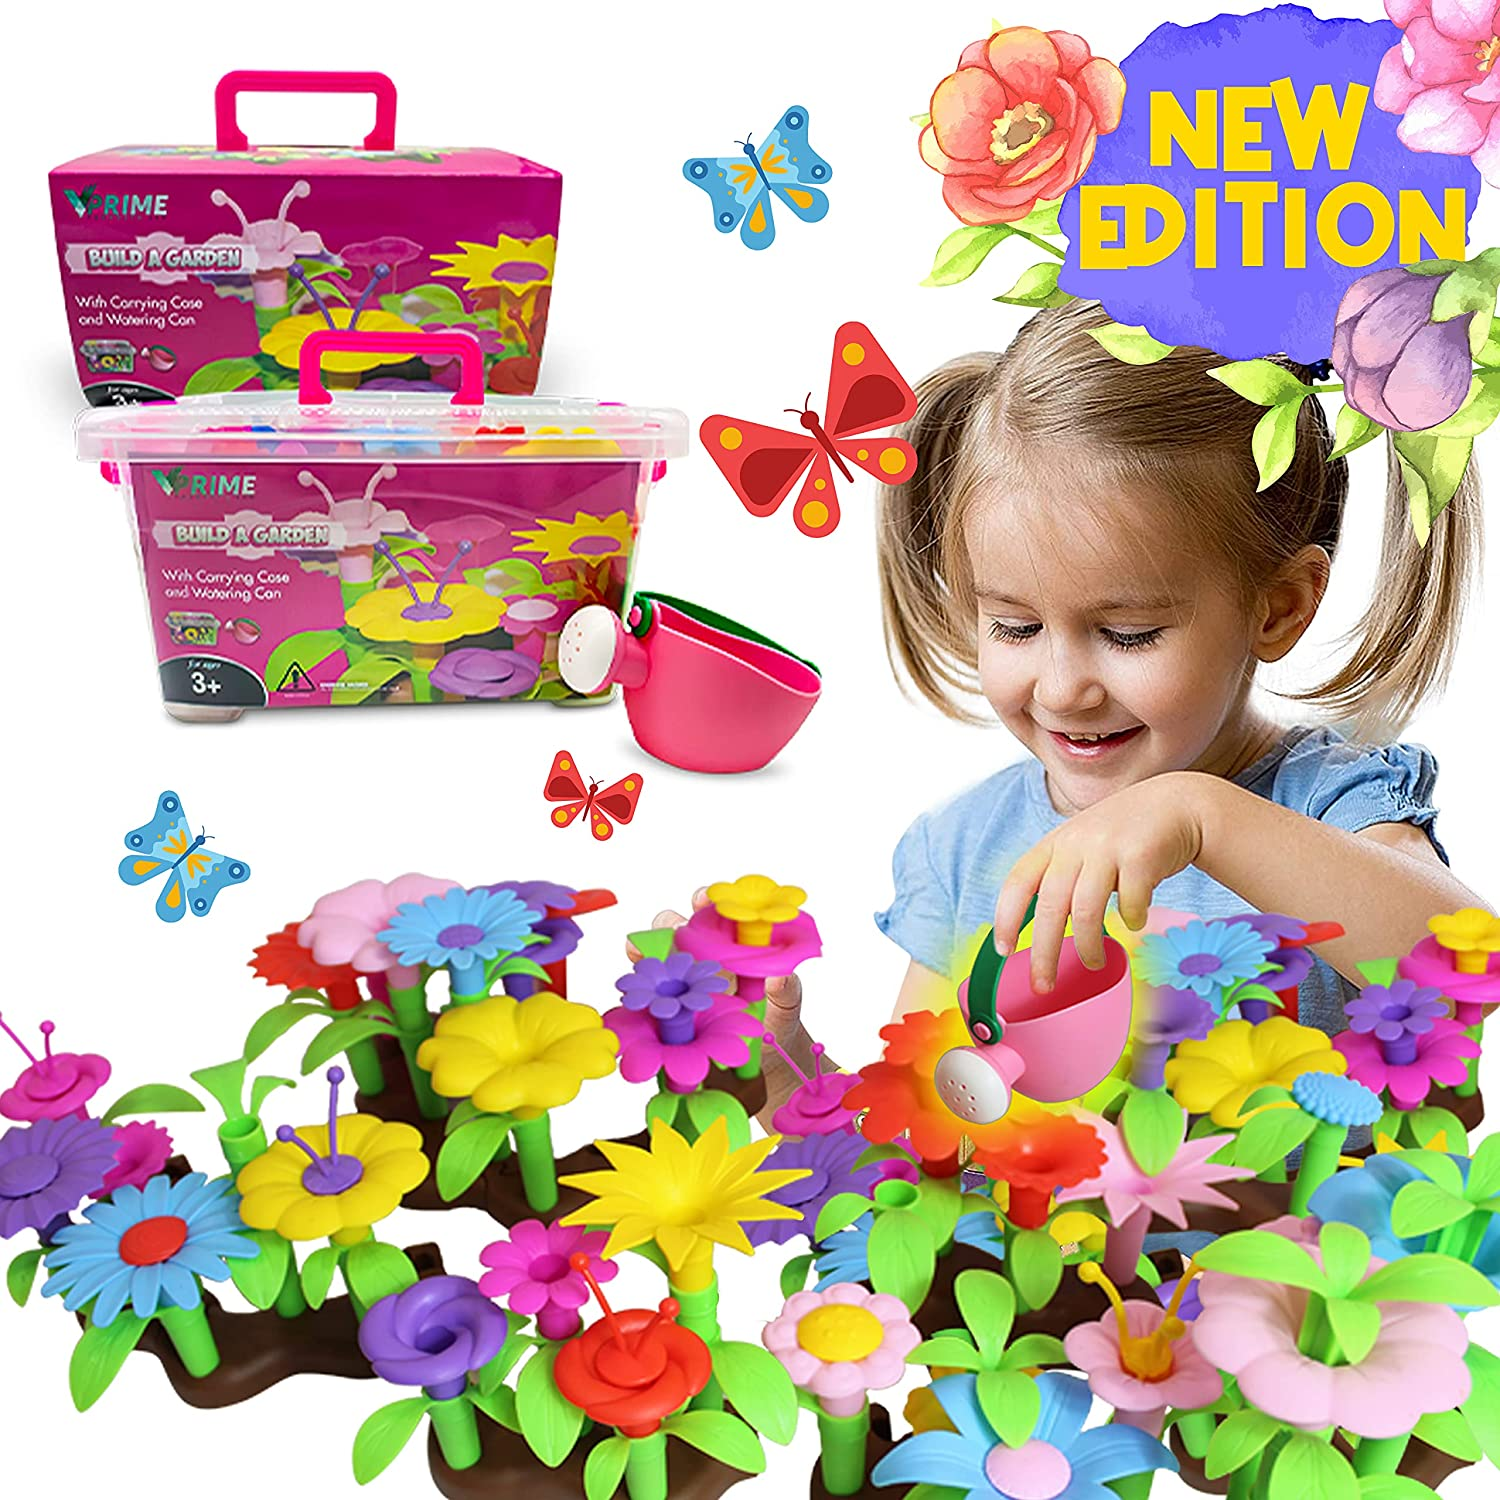 VPRIME Flower Garden Building Toy Super beauty product restock quality top Gift Case an with Large discharge sale Set Carrying